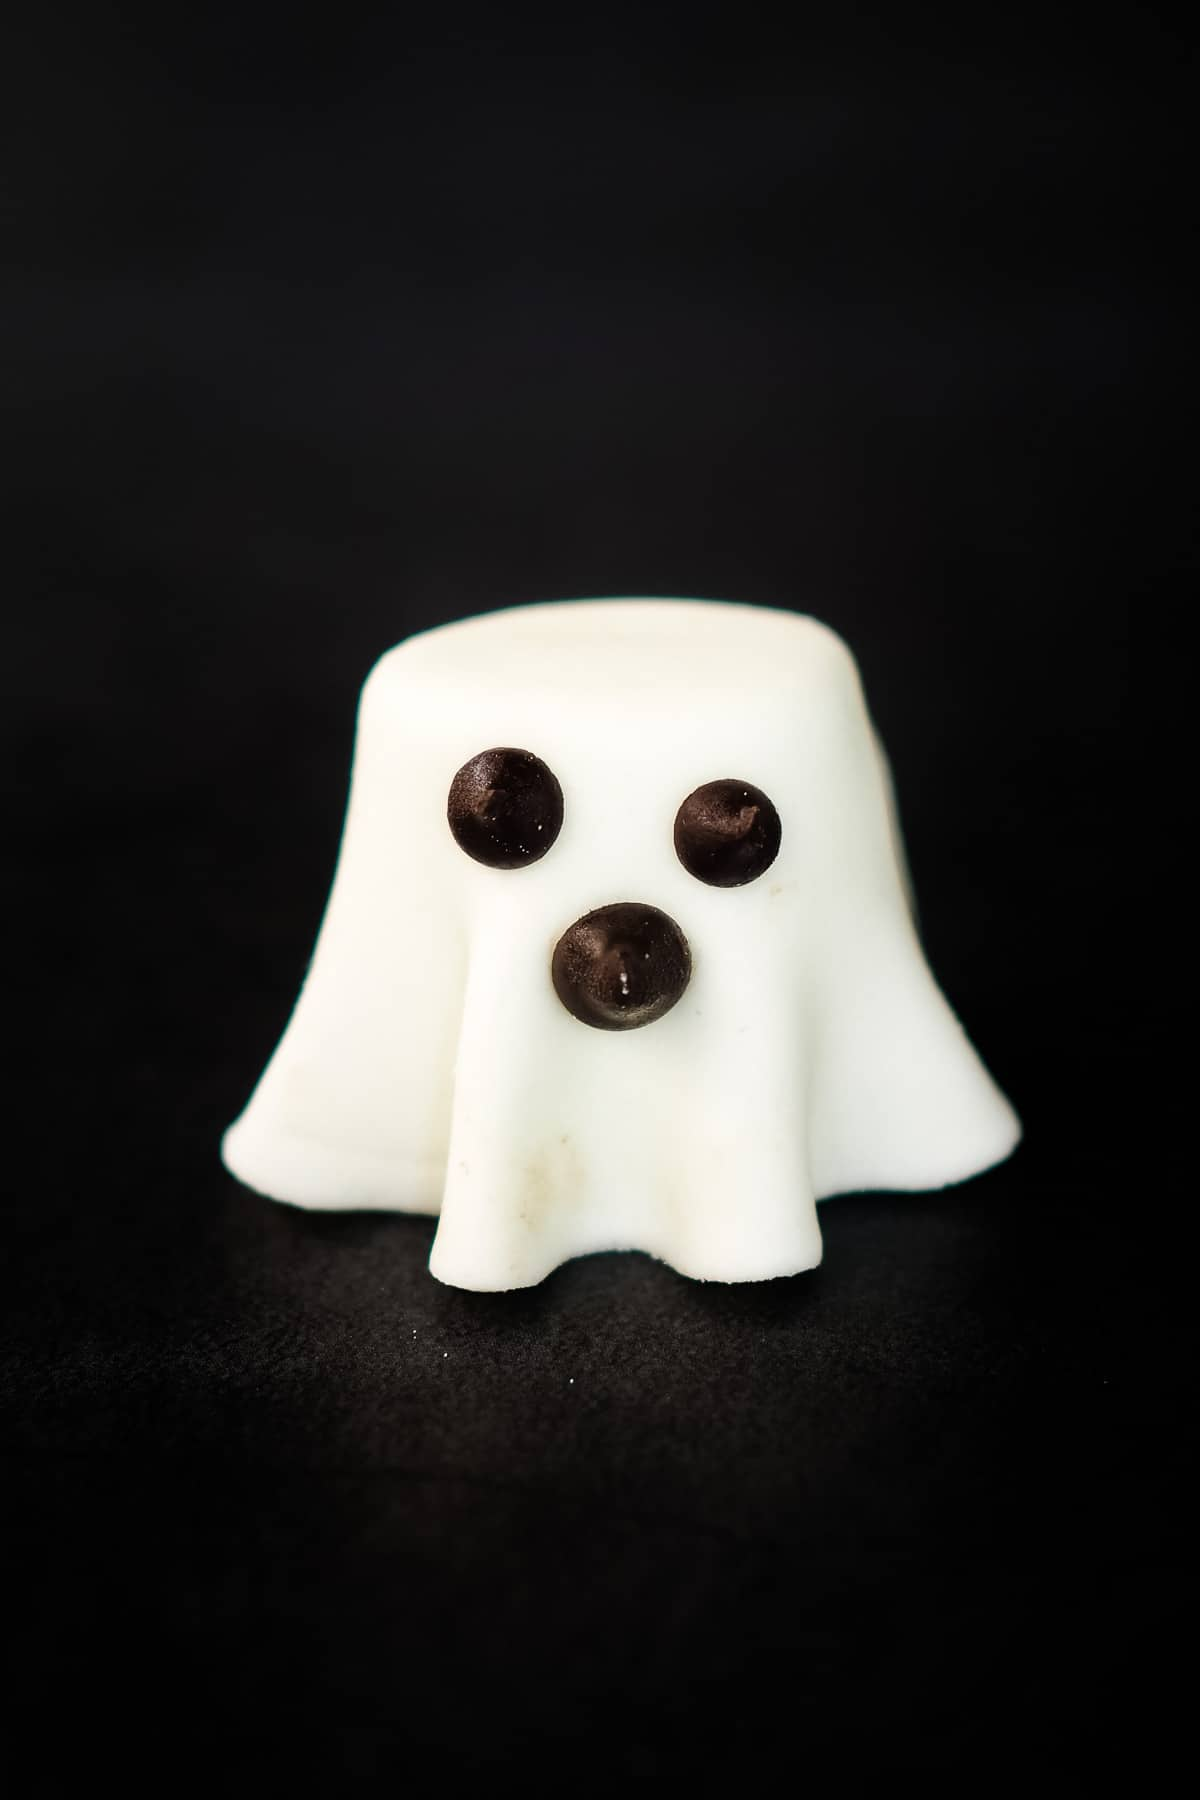 A marshmallow ghost made of fondant and marshmallow and chocolate chips